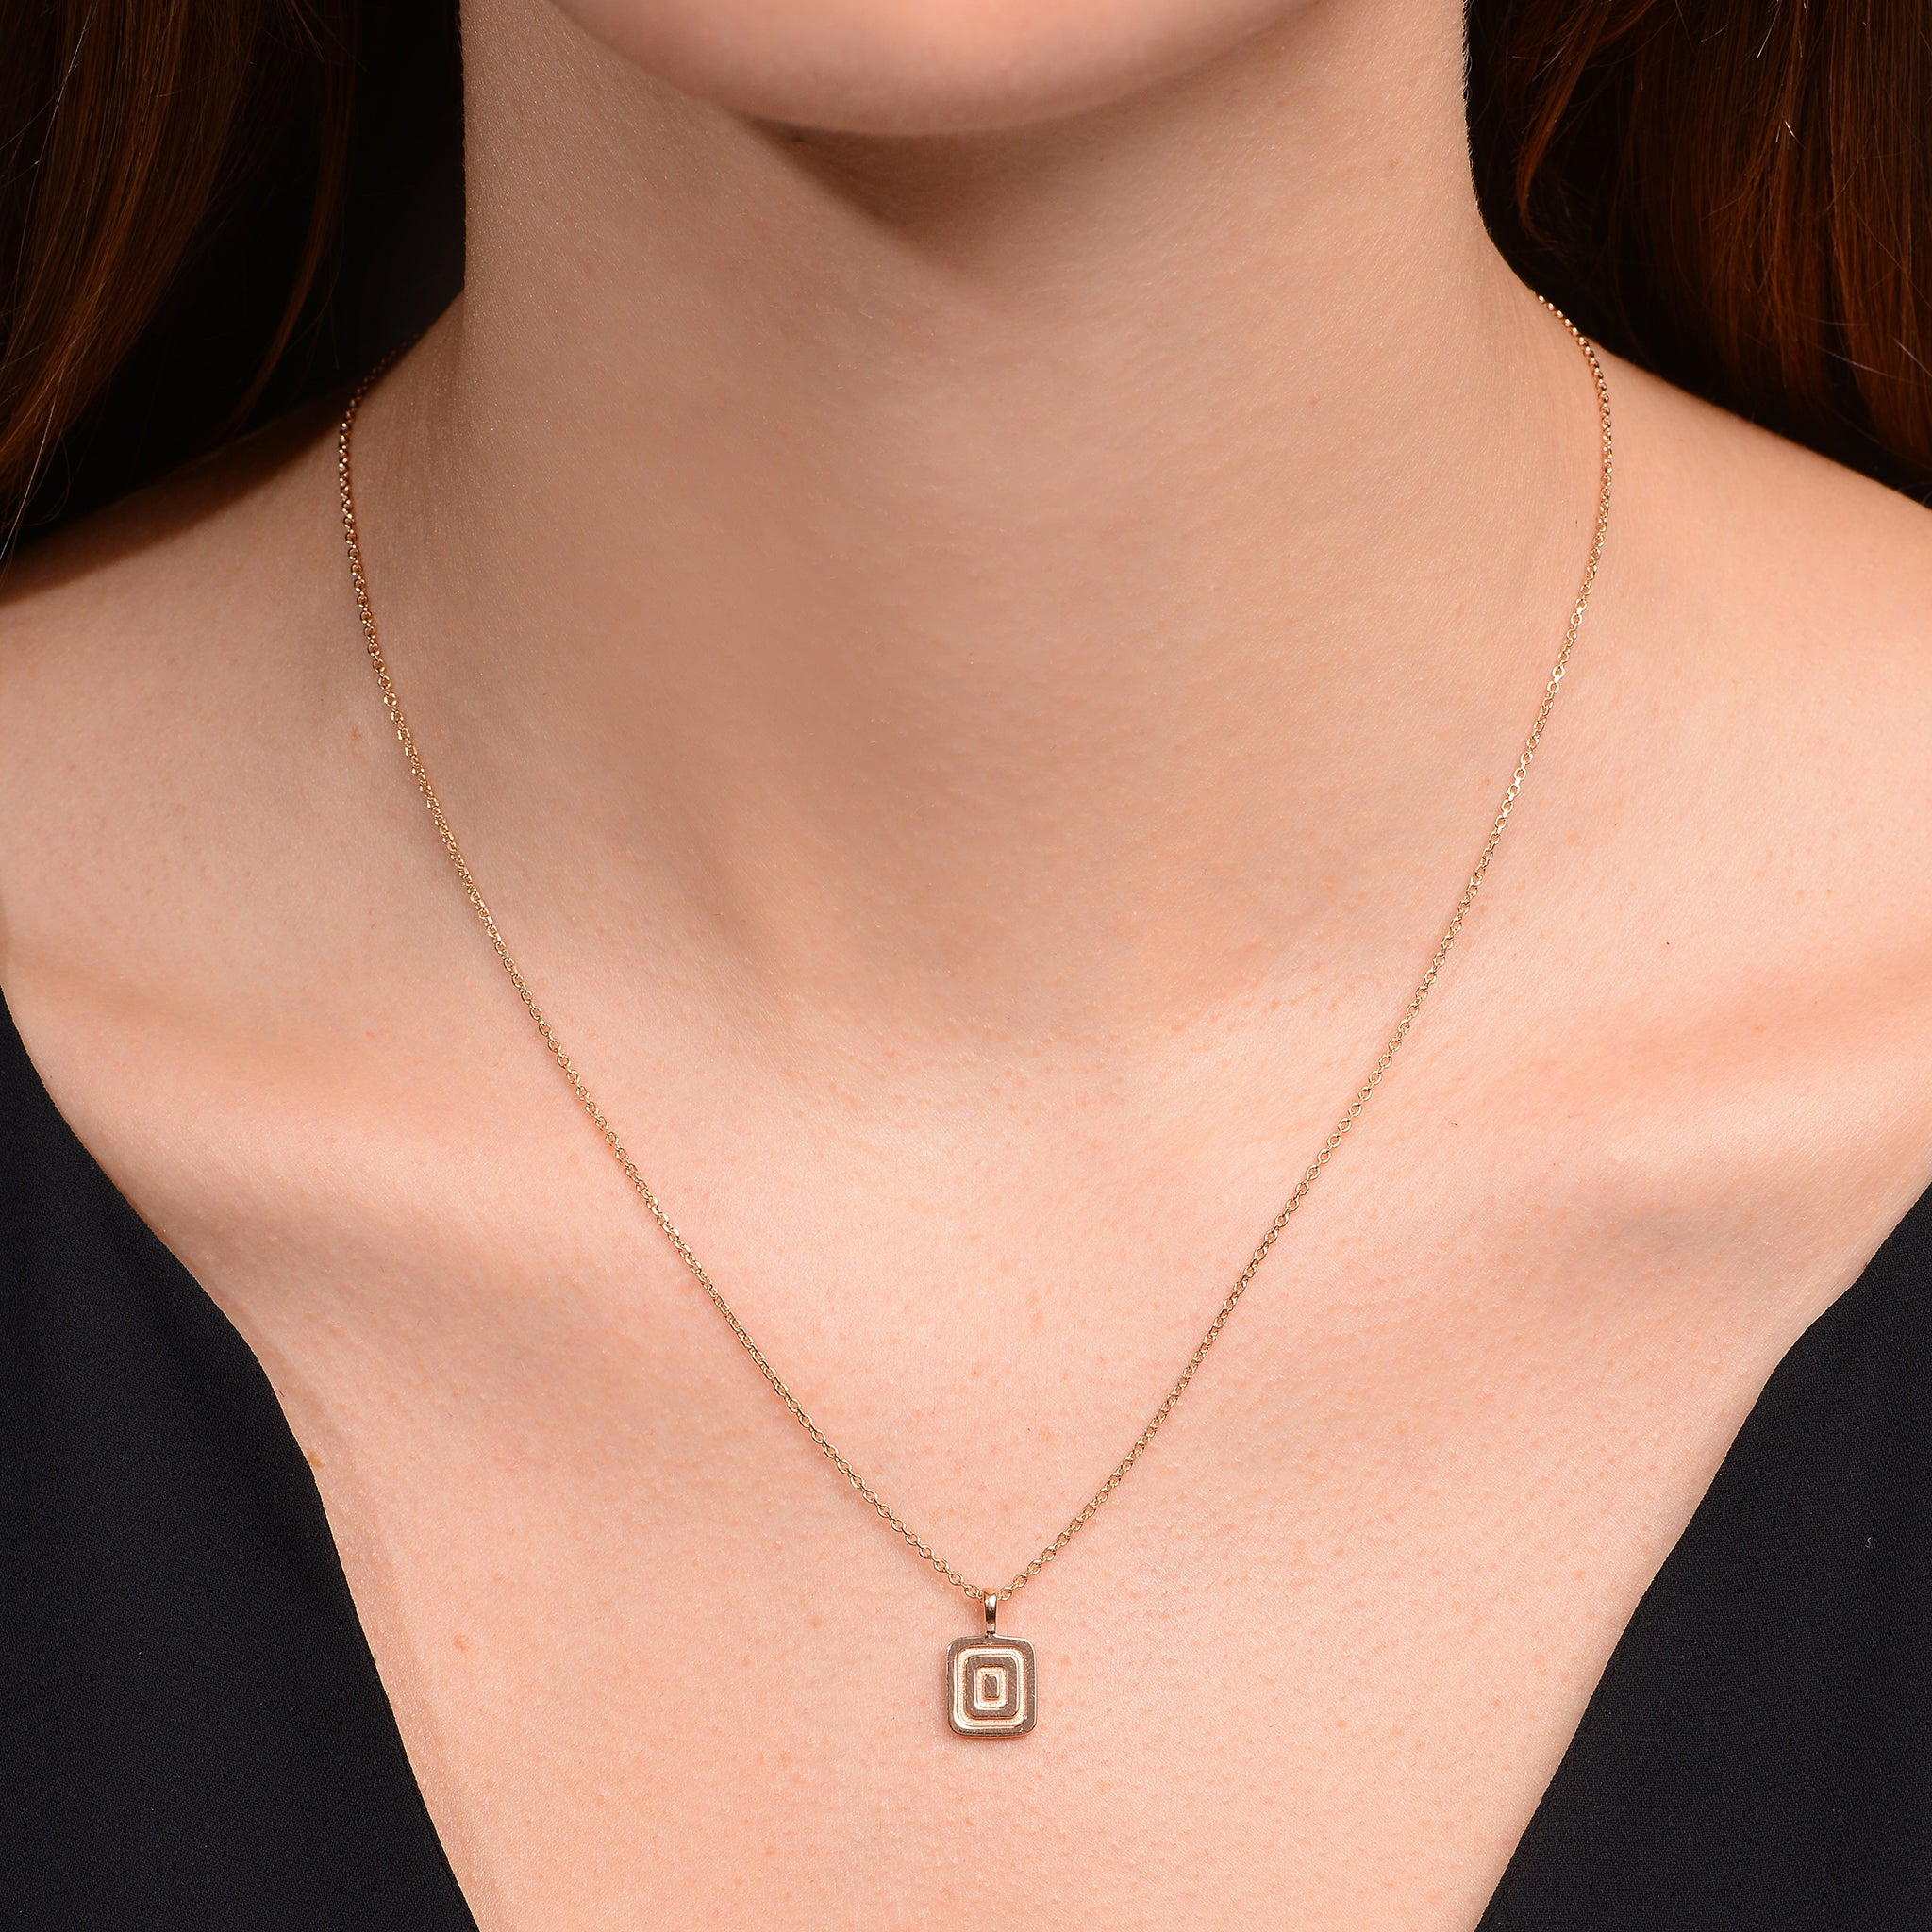 Mimi-So-Piece-Icon-Pendant-Necklace-18k-Rose-Gold